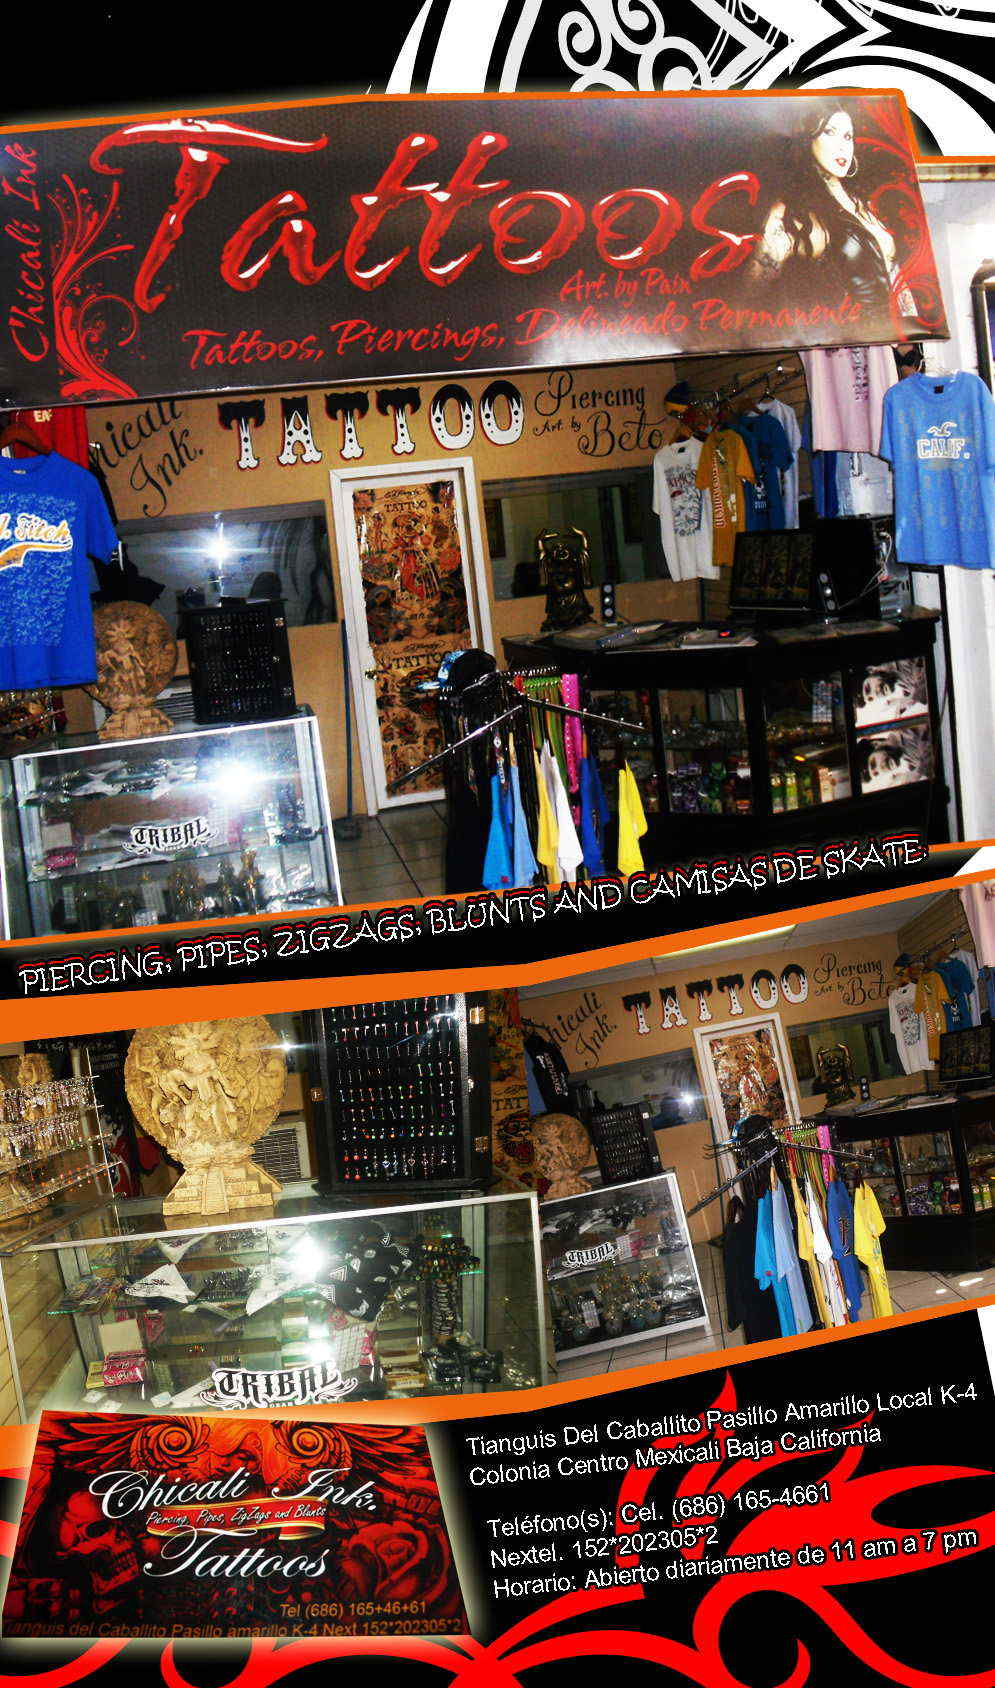 Chicali Ink. Tattoos-PIERCING, PIPES, ZIGZAGS, BLUNTS AND CAMISAS DE SKATE.